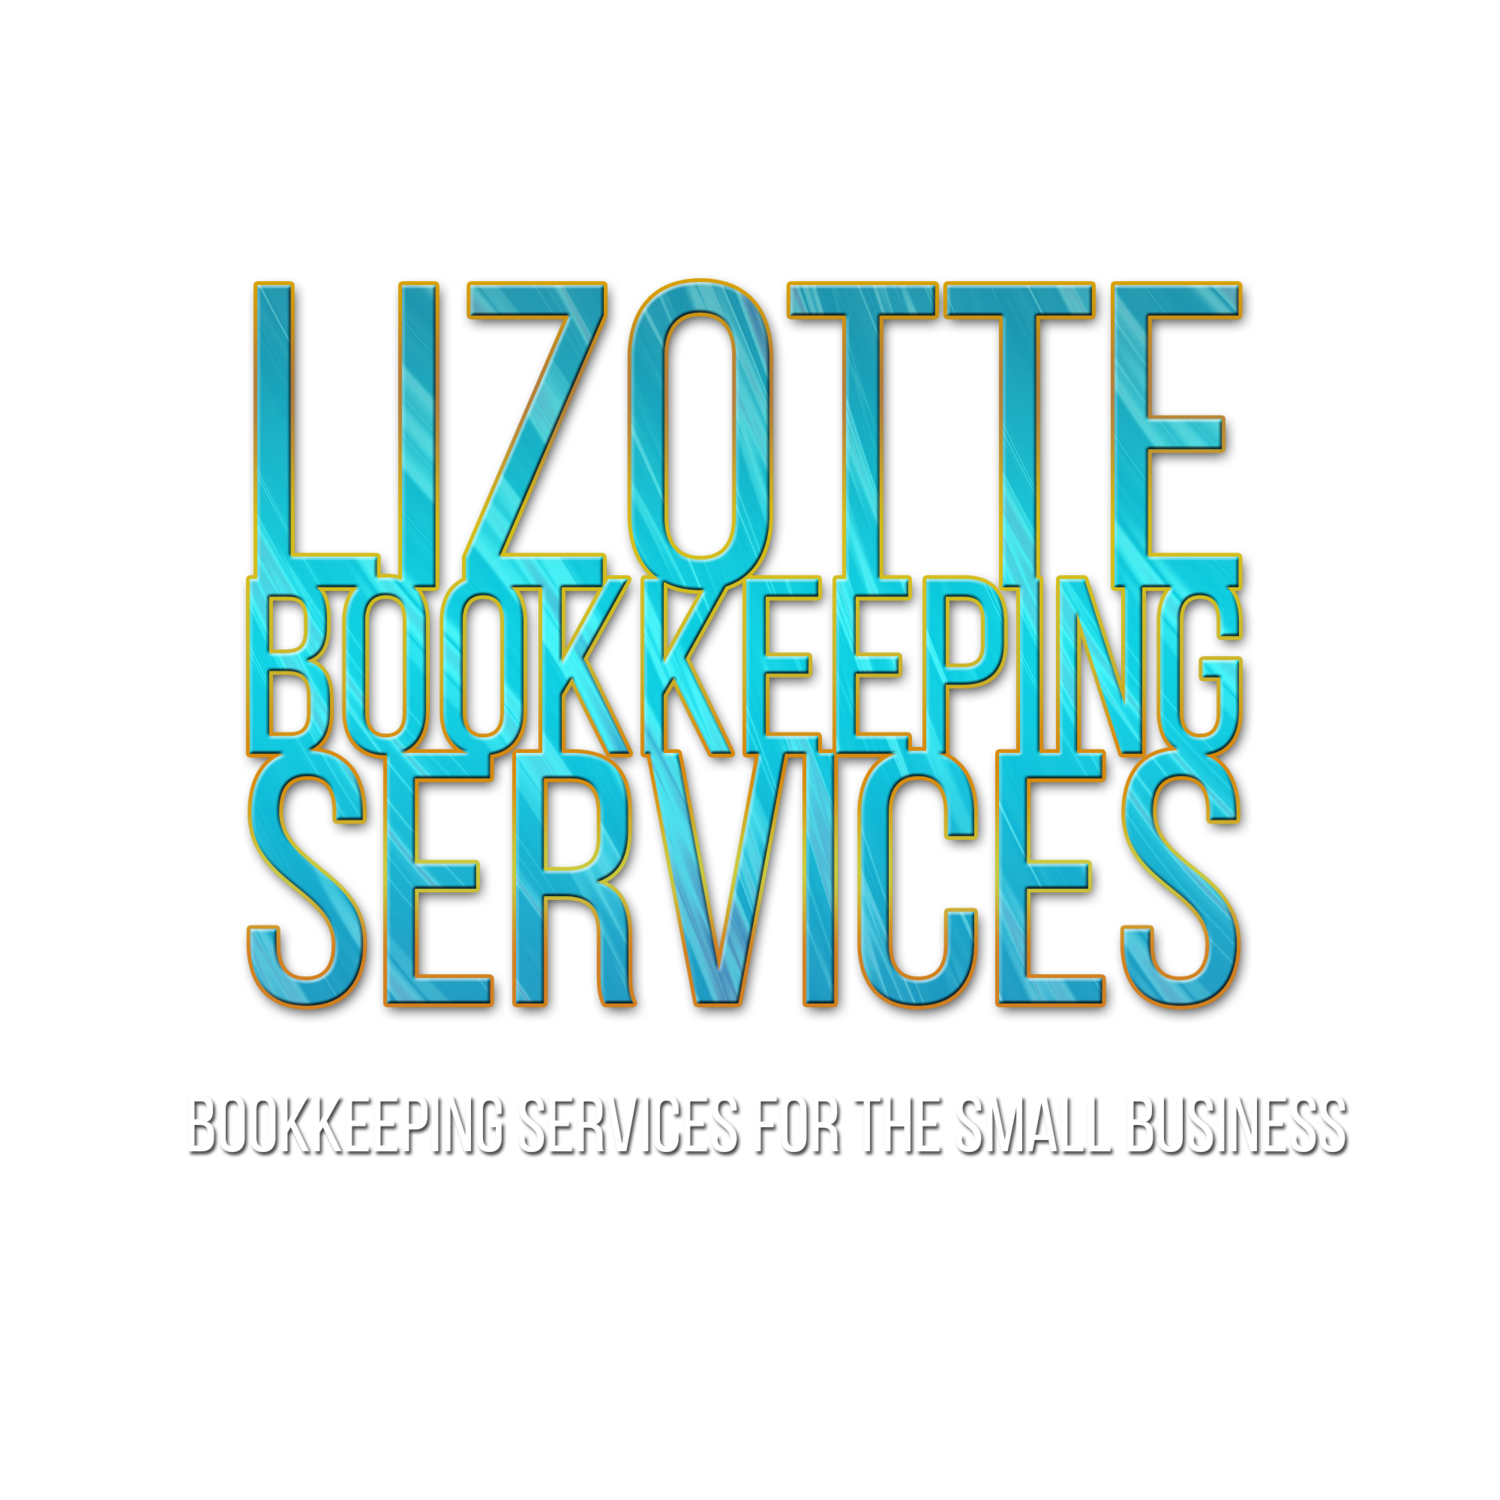 Lizotte Bookkeeping Services